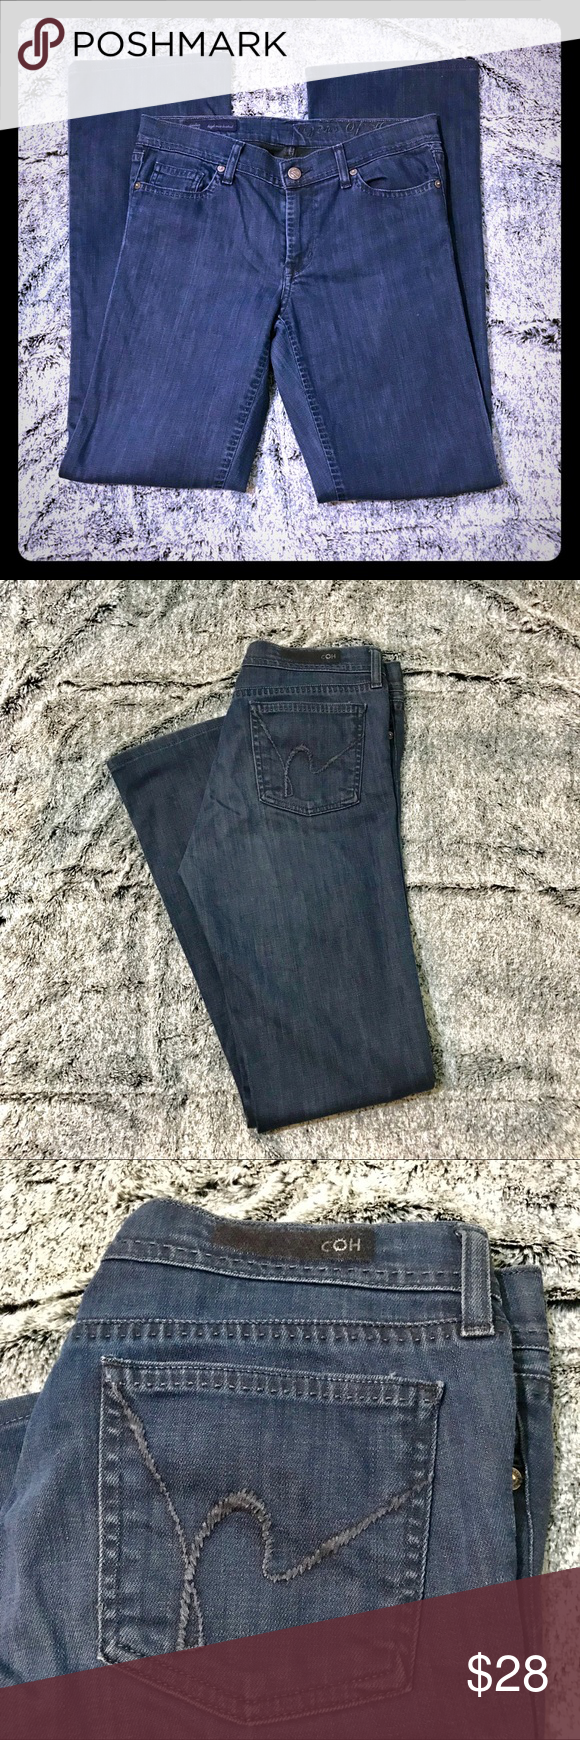 """f656714c8cd Citizens of Humanity amber stretch jeans High rise boot cut amber stretch  Citizens of Humanity jeans Great condition! Size 29 Inseam 31"""" Citizens Of  ..."""